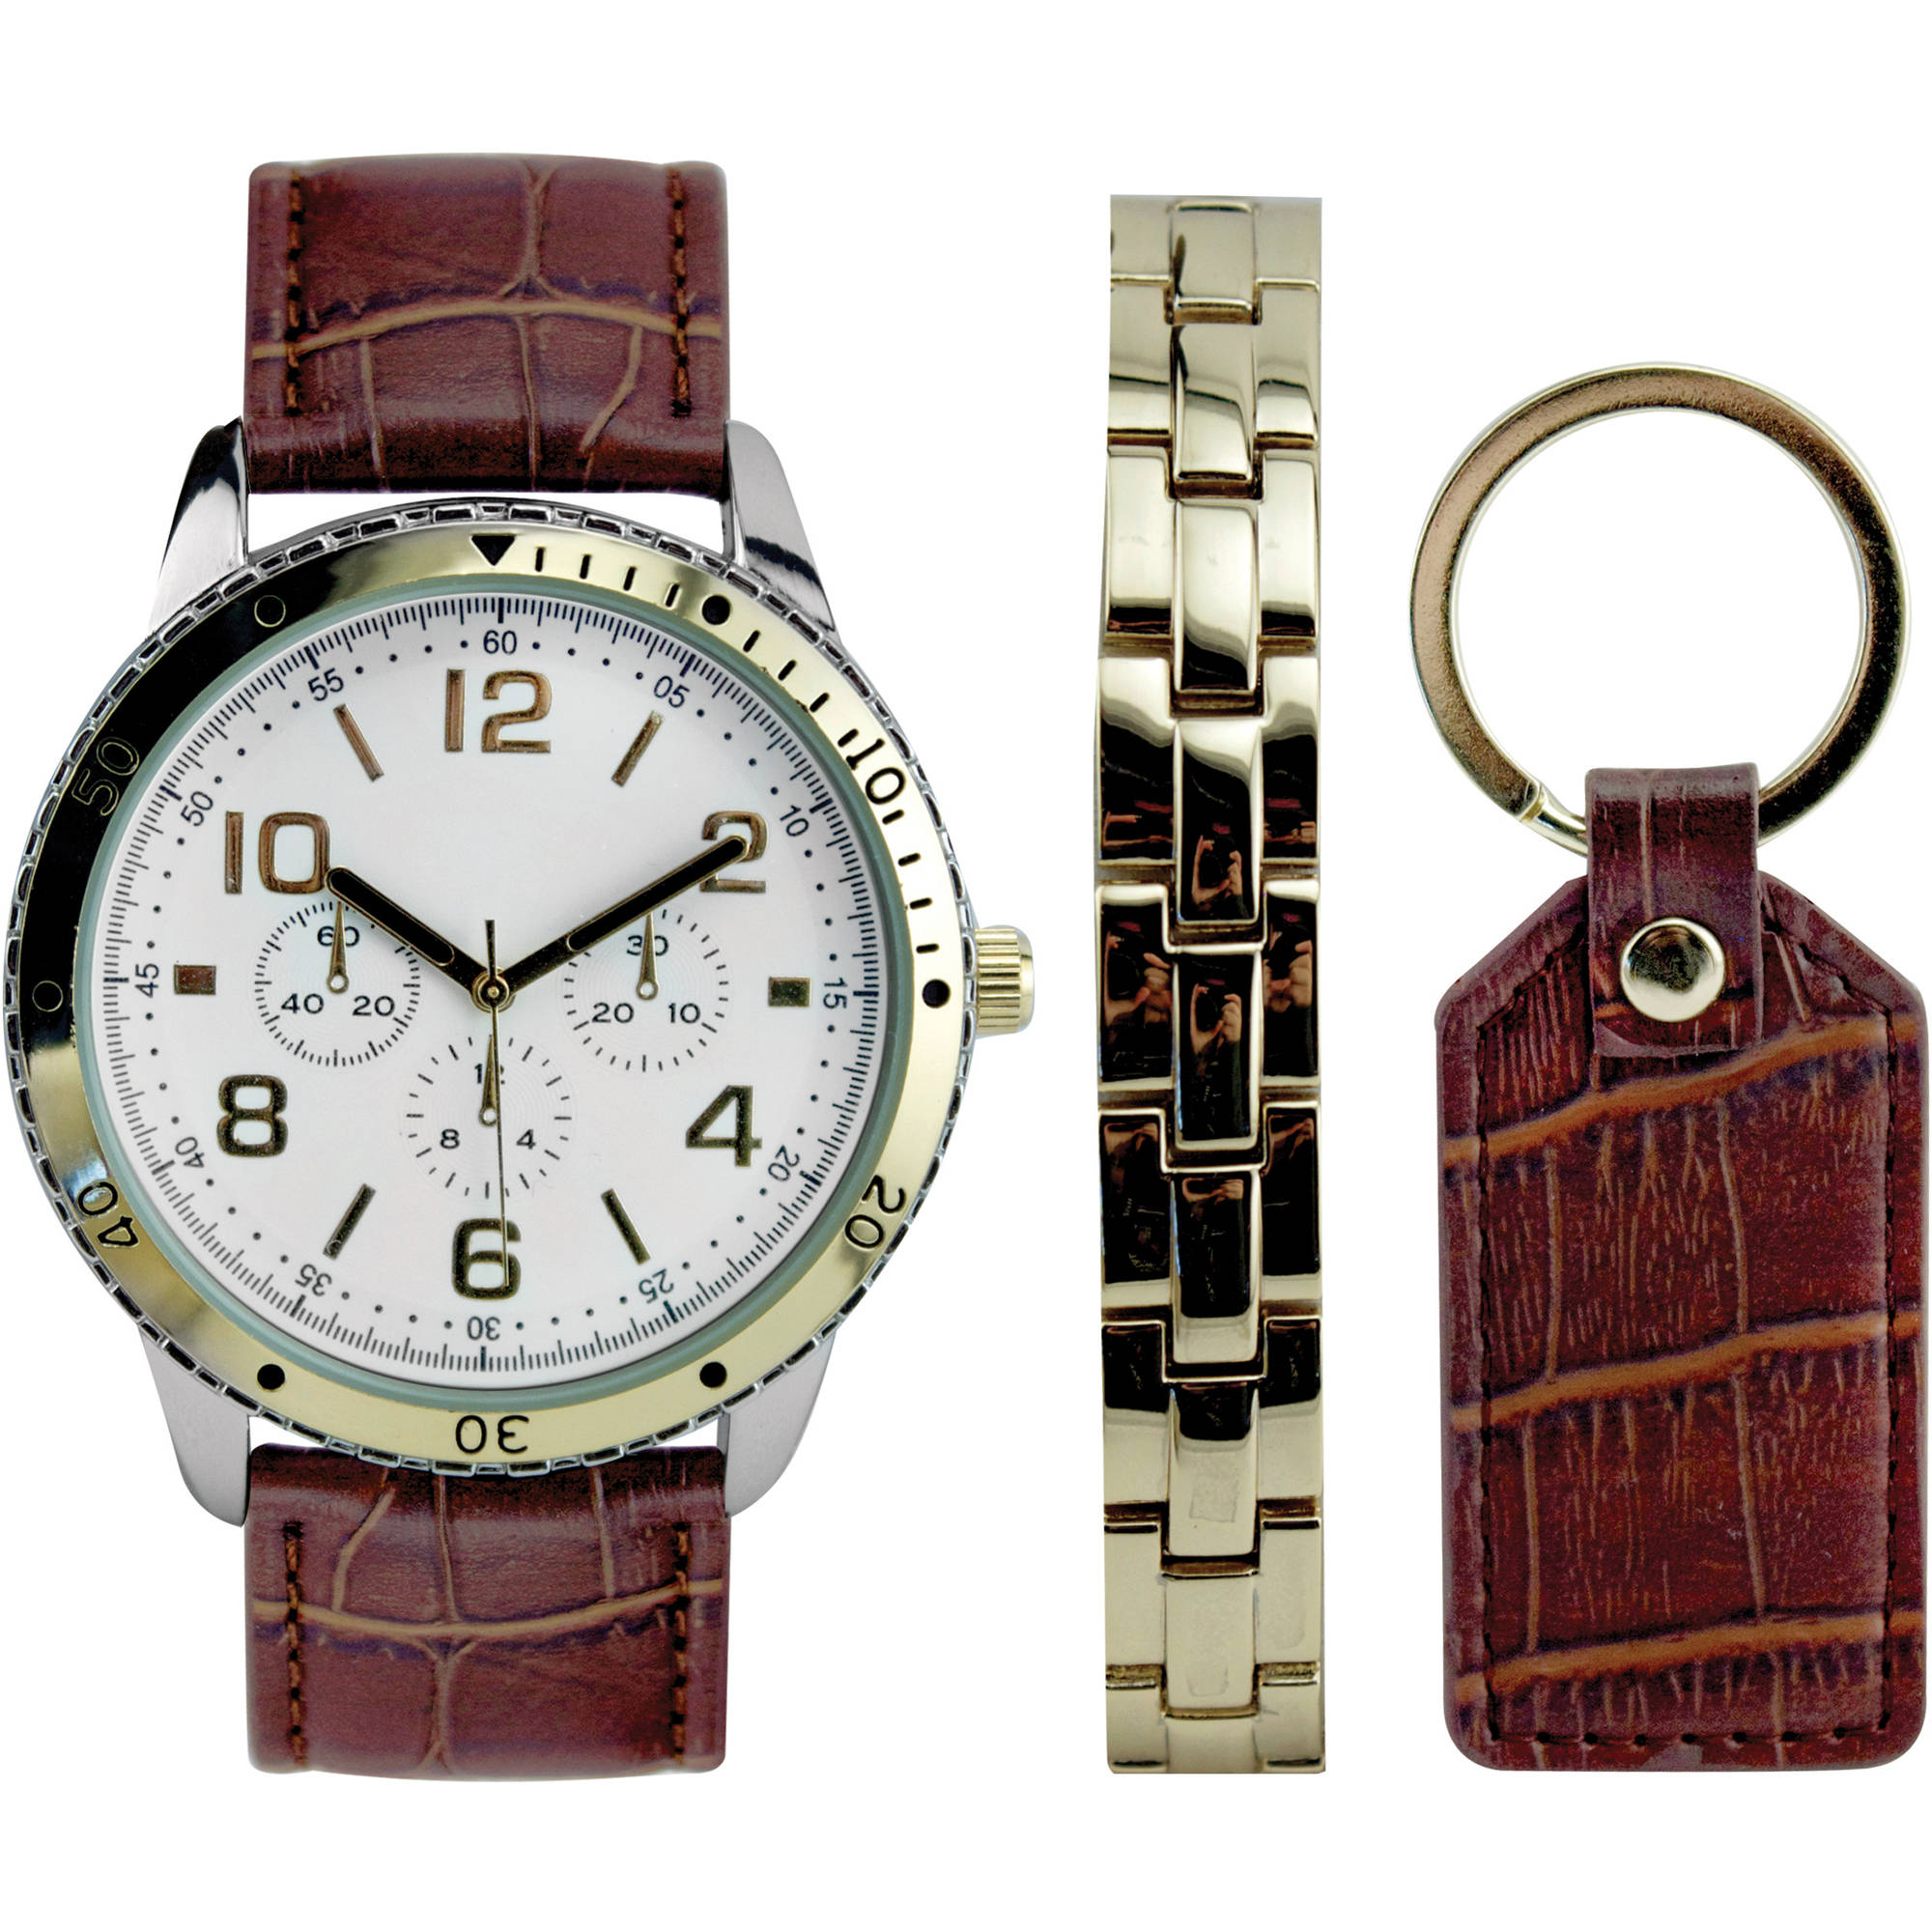 Men's Gold and Brown Croco Watch Set with Bracelet and Key Chain